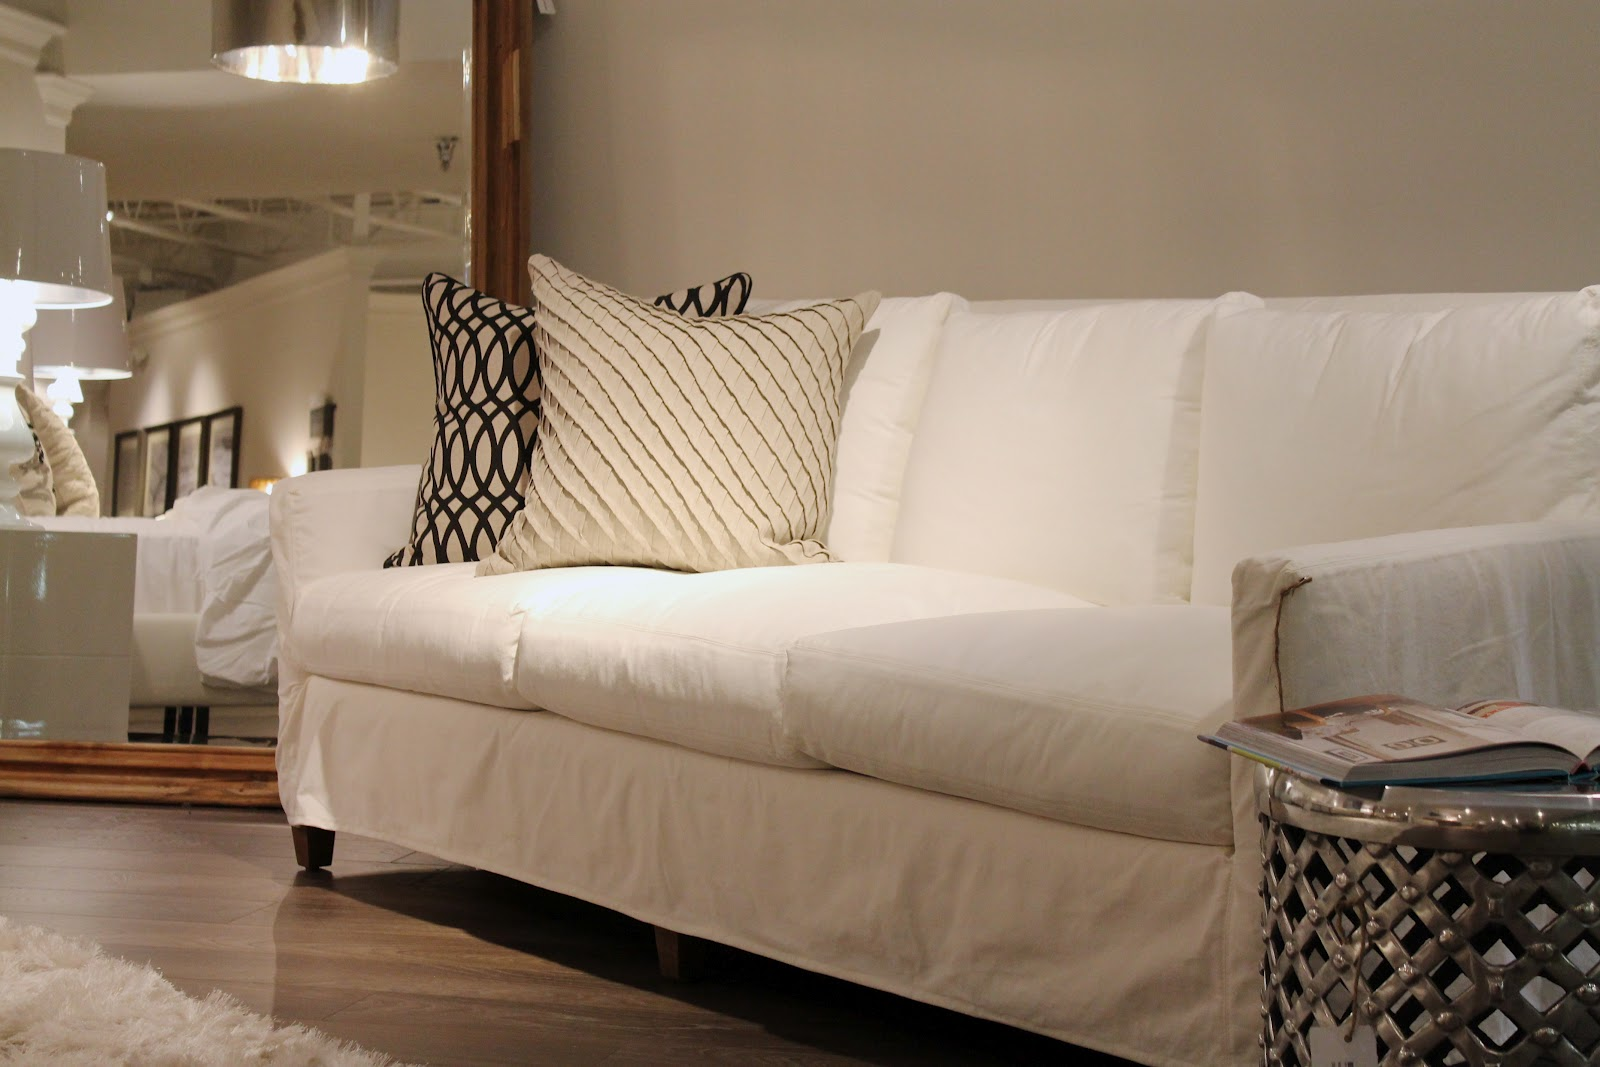 Lovely A Giant Basket For Blankets Or Throw Pillows Adds Texture And Scale To Any  Room